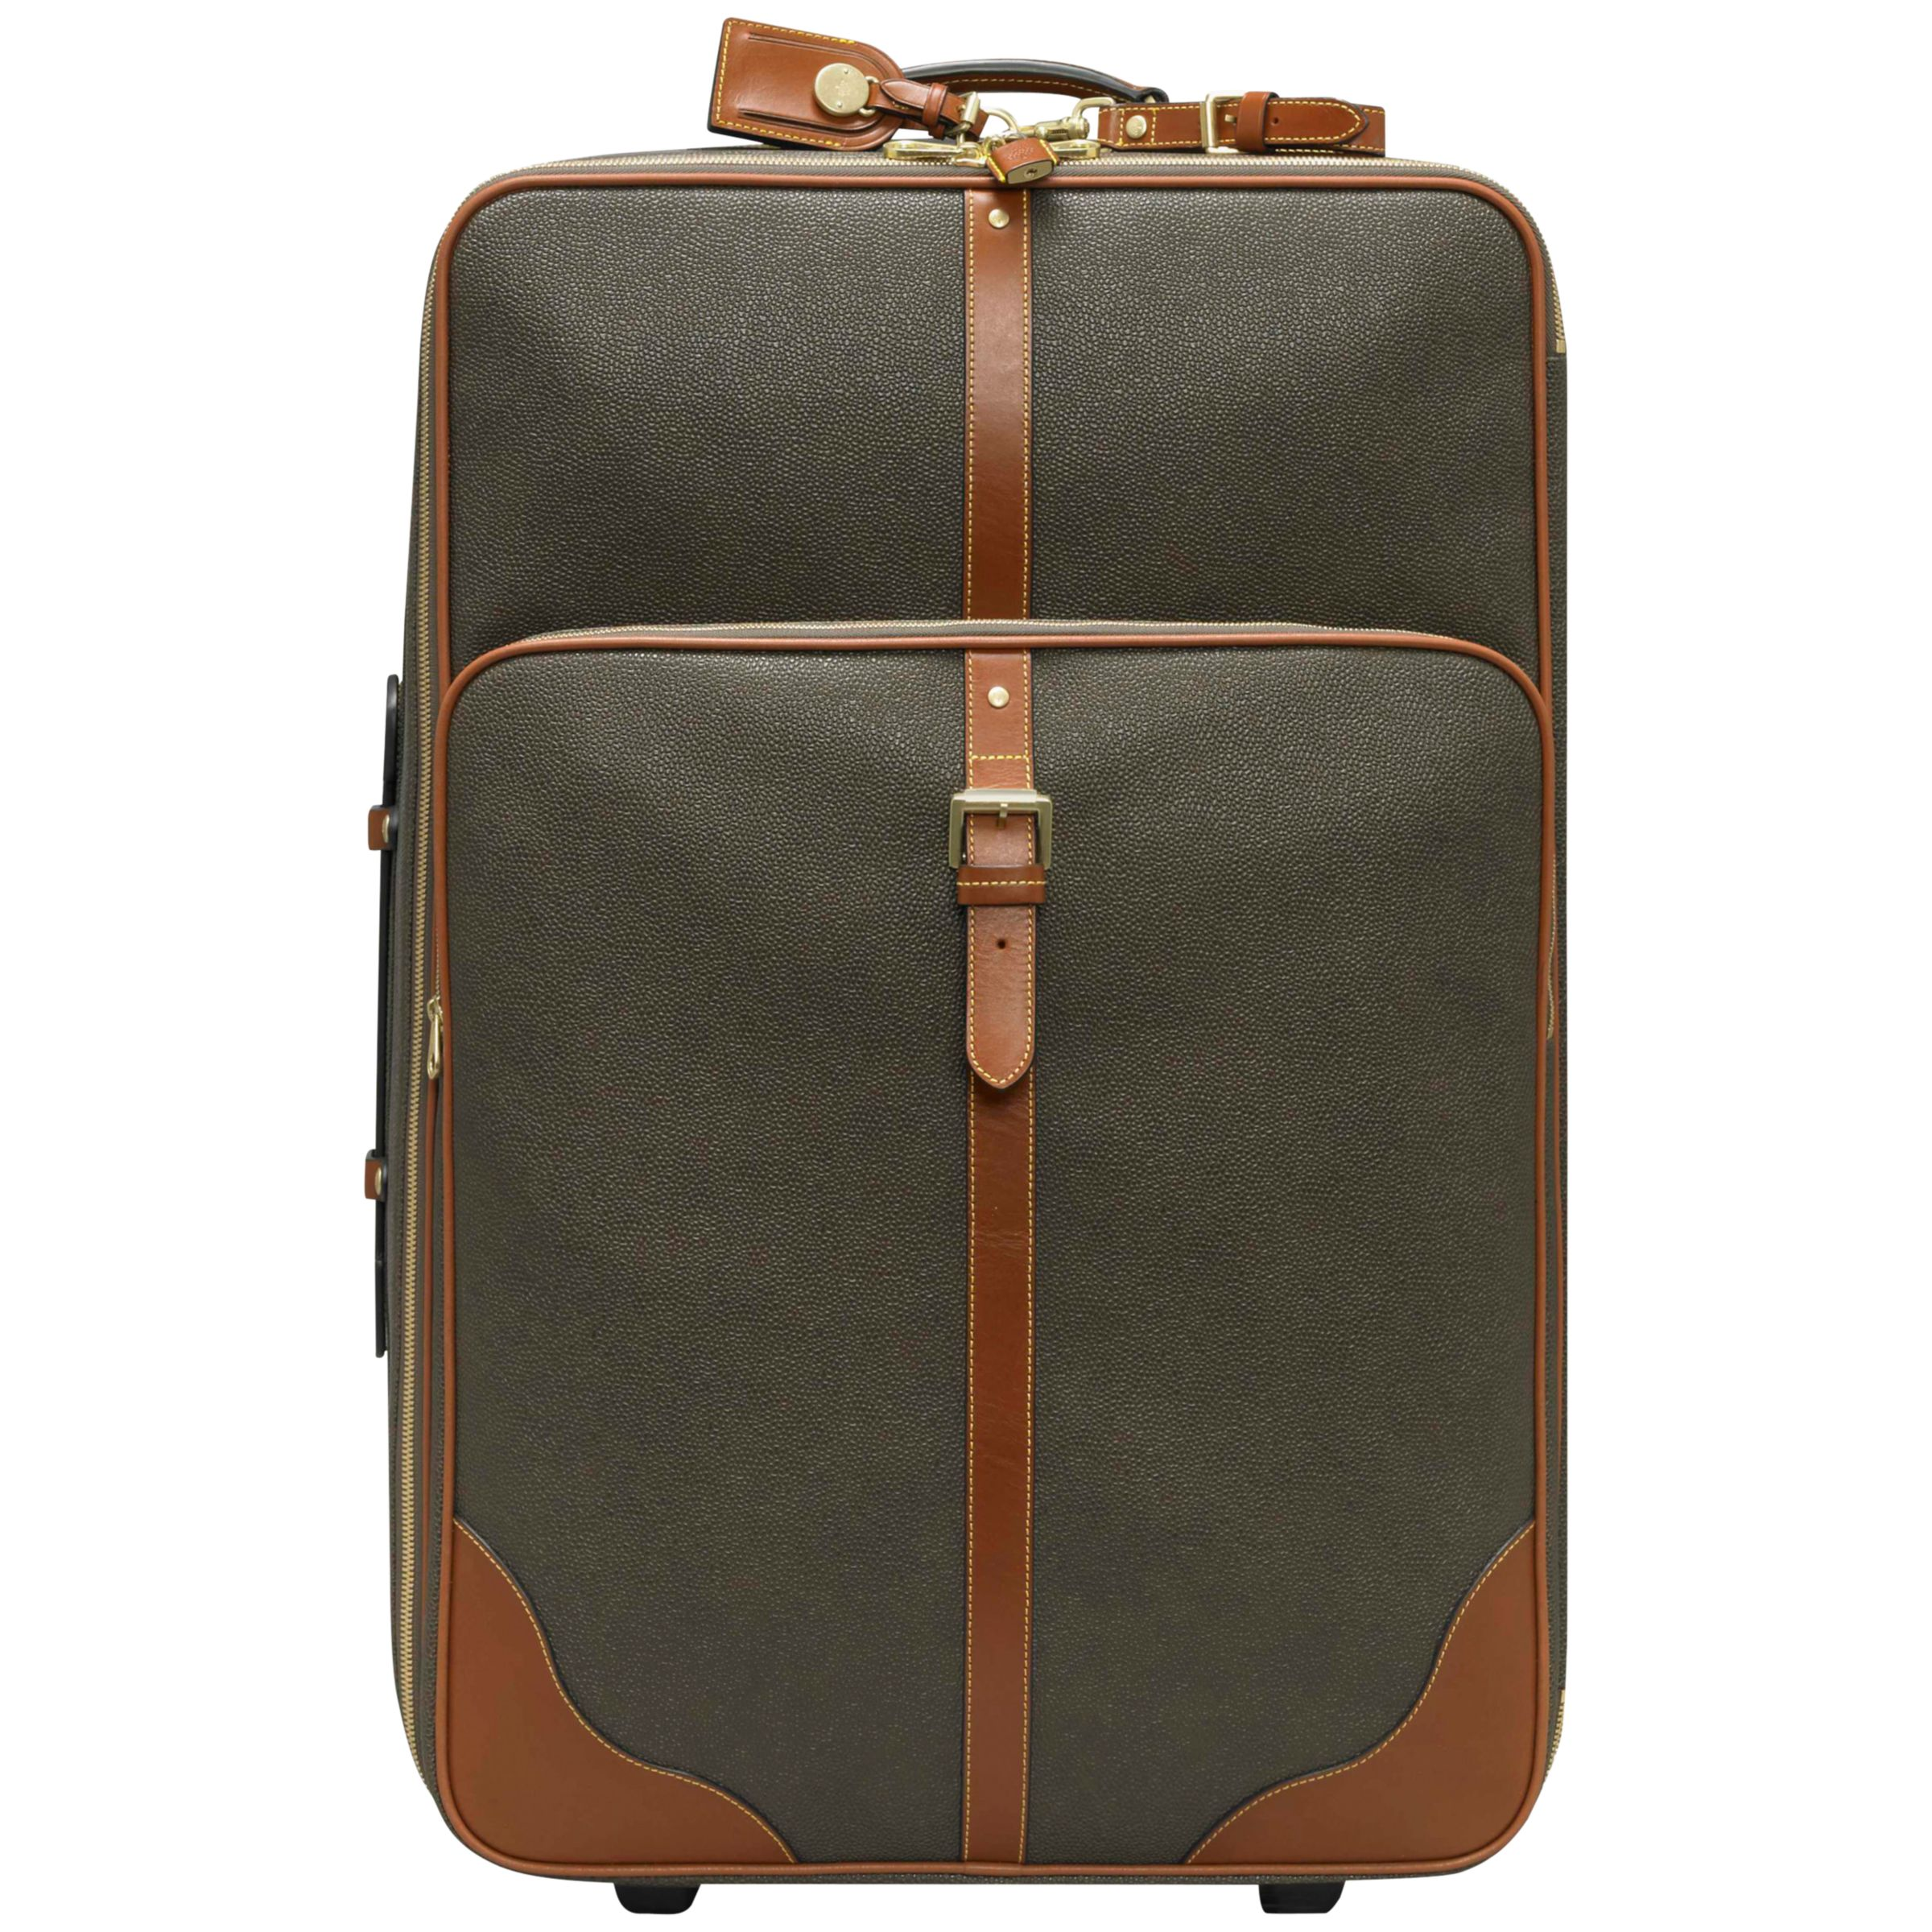 Mulberry Scotchgrain Leather Trim Suitcase, Mole/Cognac